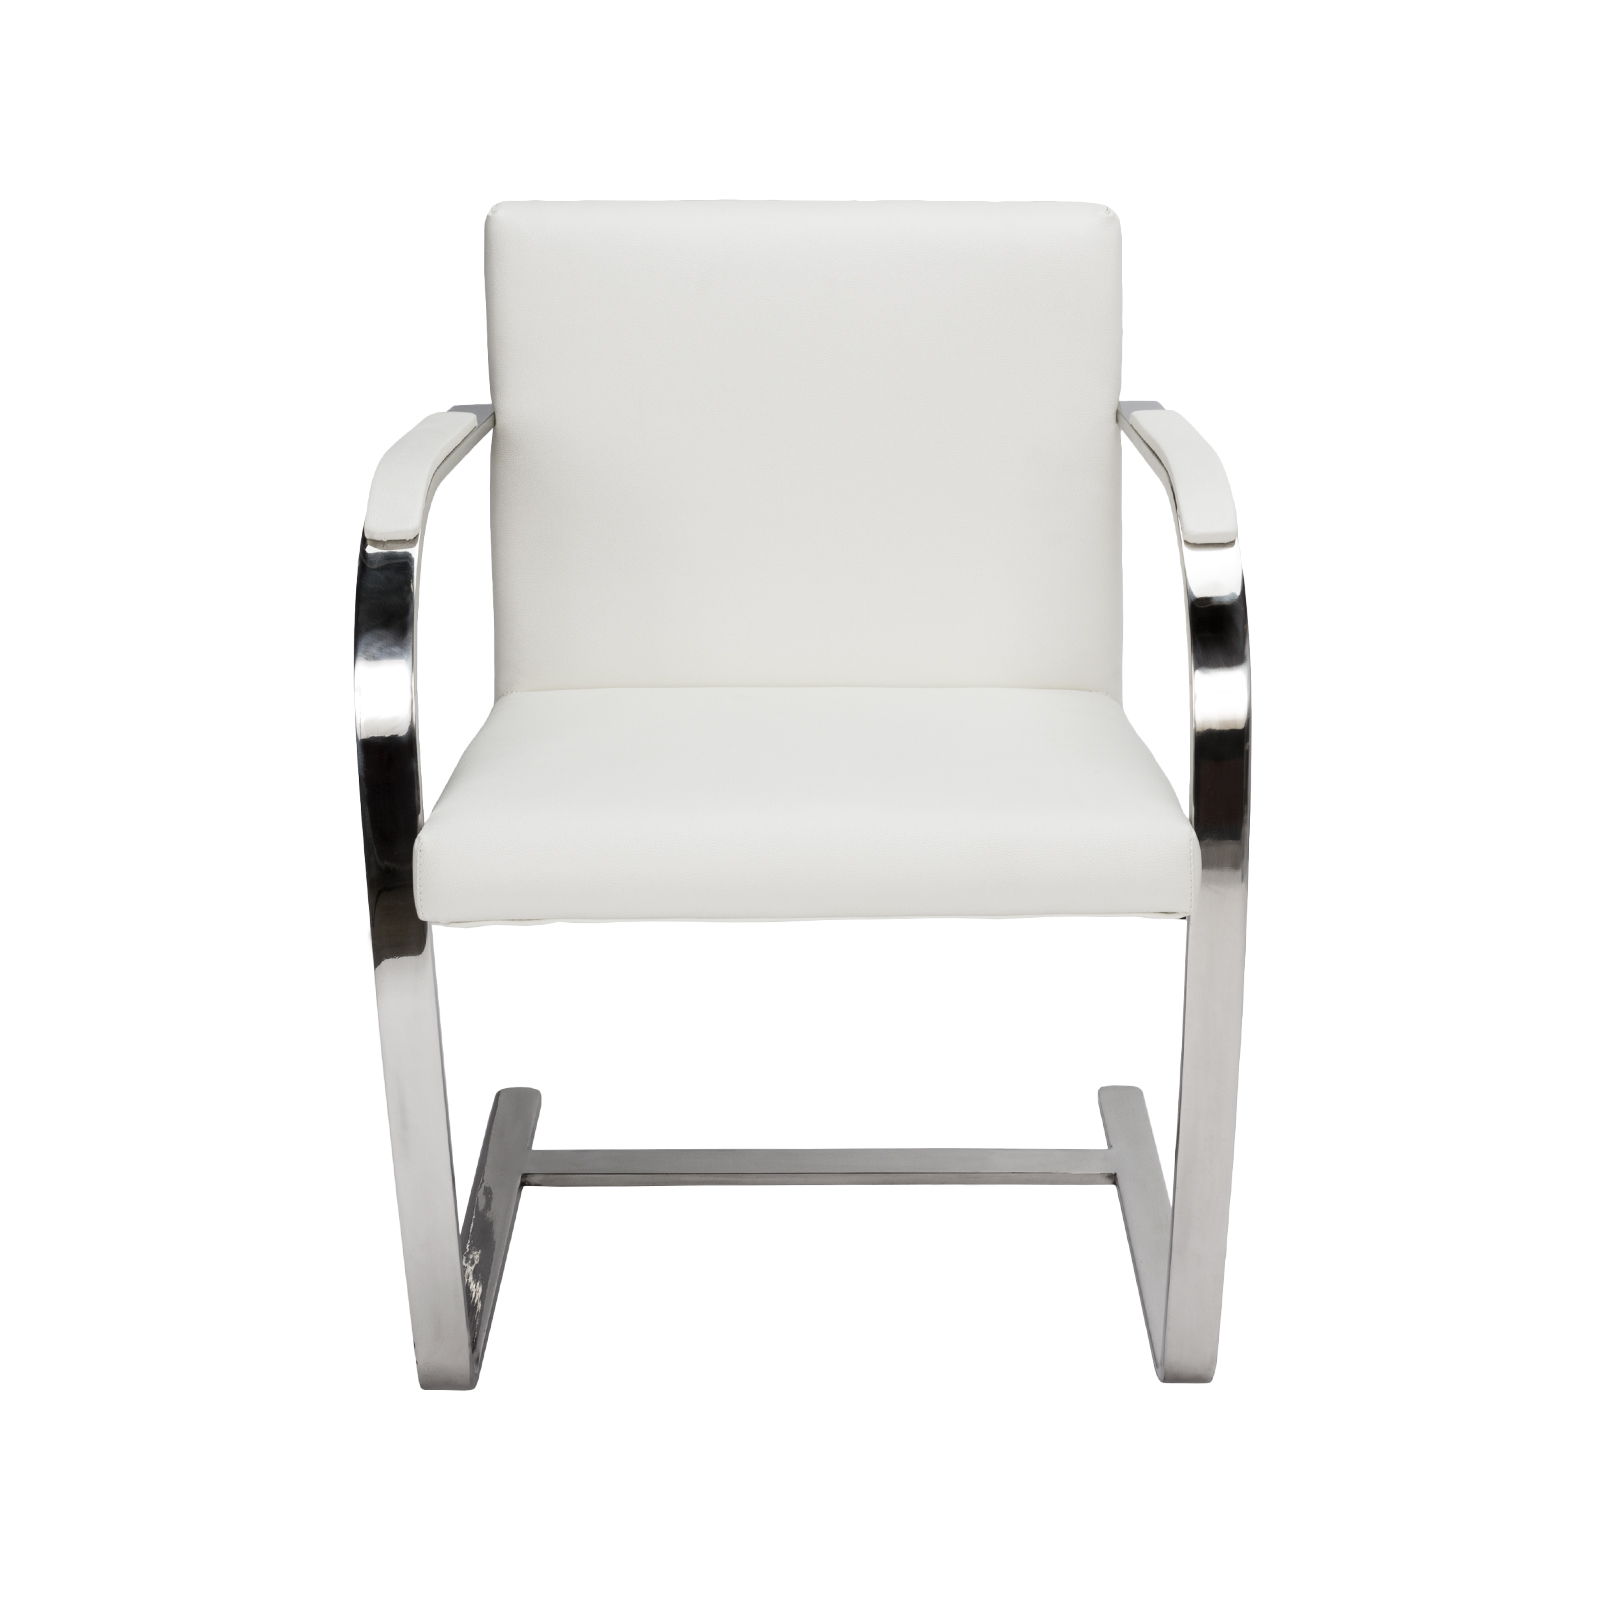 white chair rentals gym deluxe brno mies van der rohe delivery formdecor